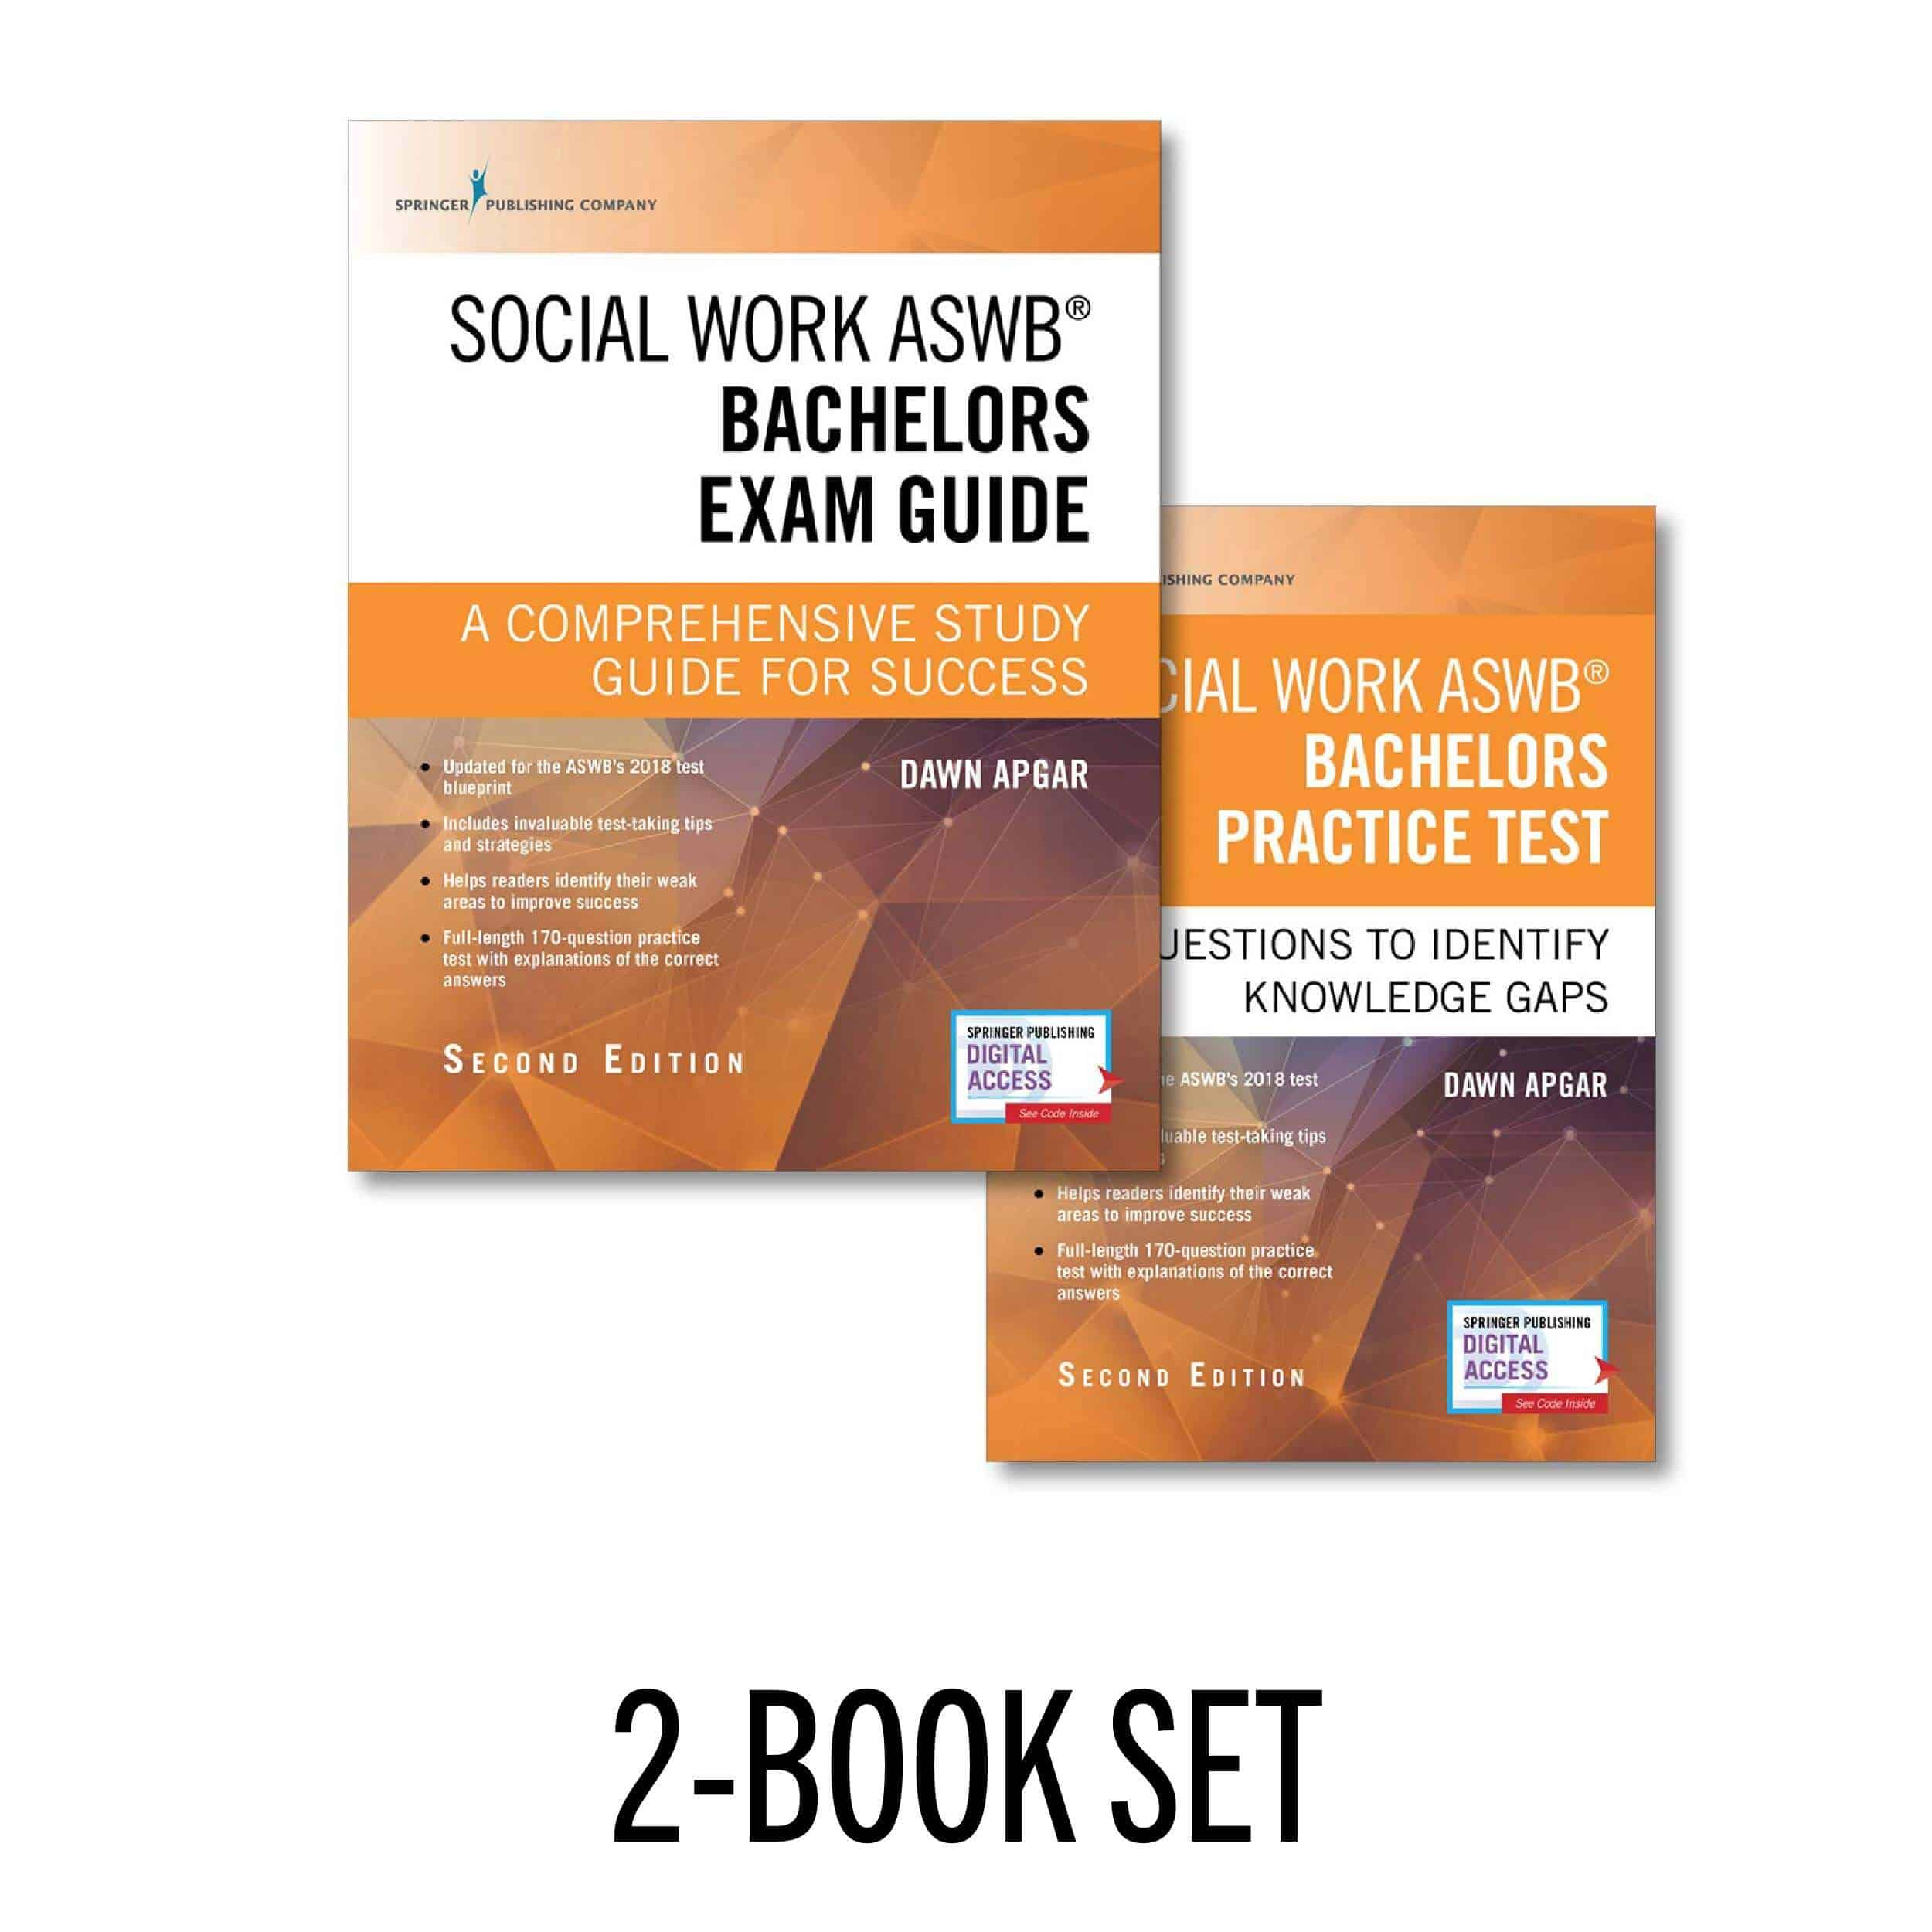 An image of Social Work ASWB Bachelors Exam Guide and Practice Test